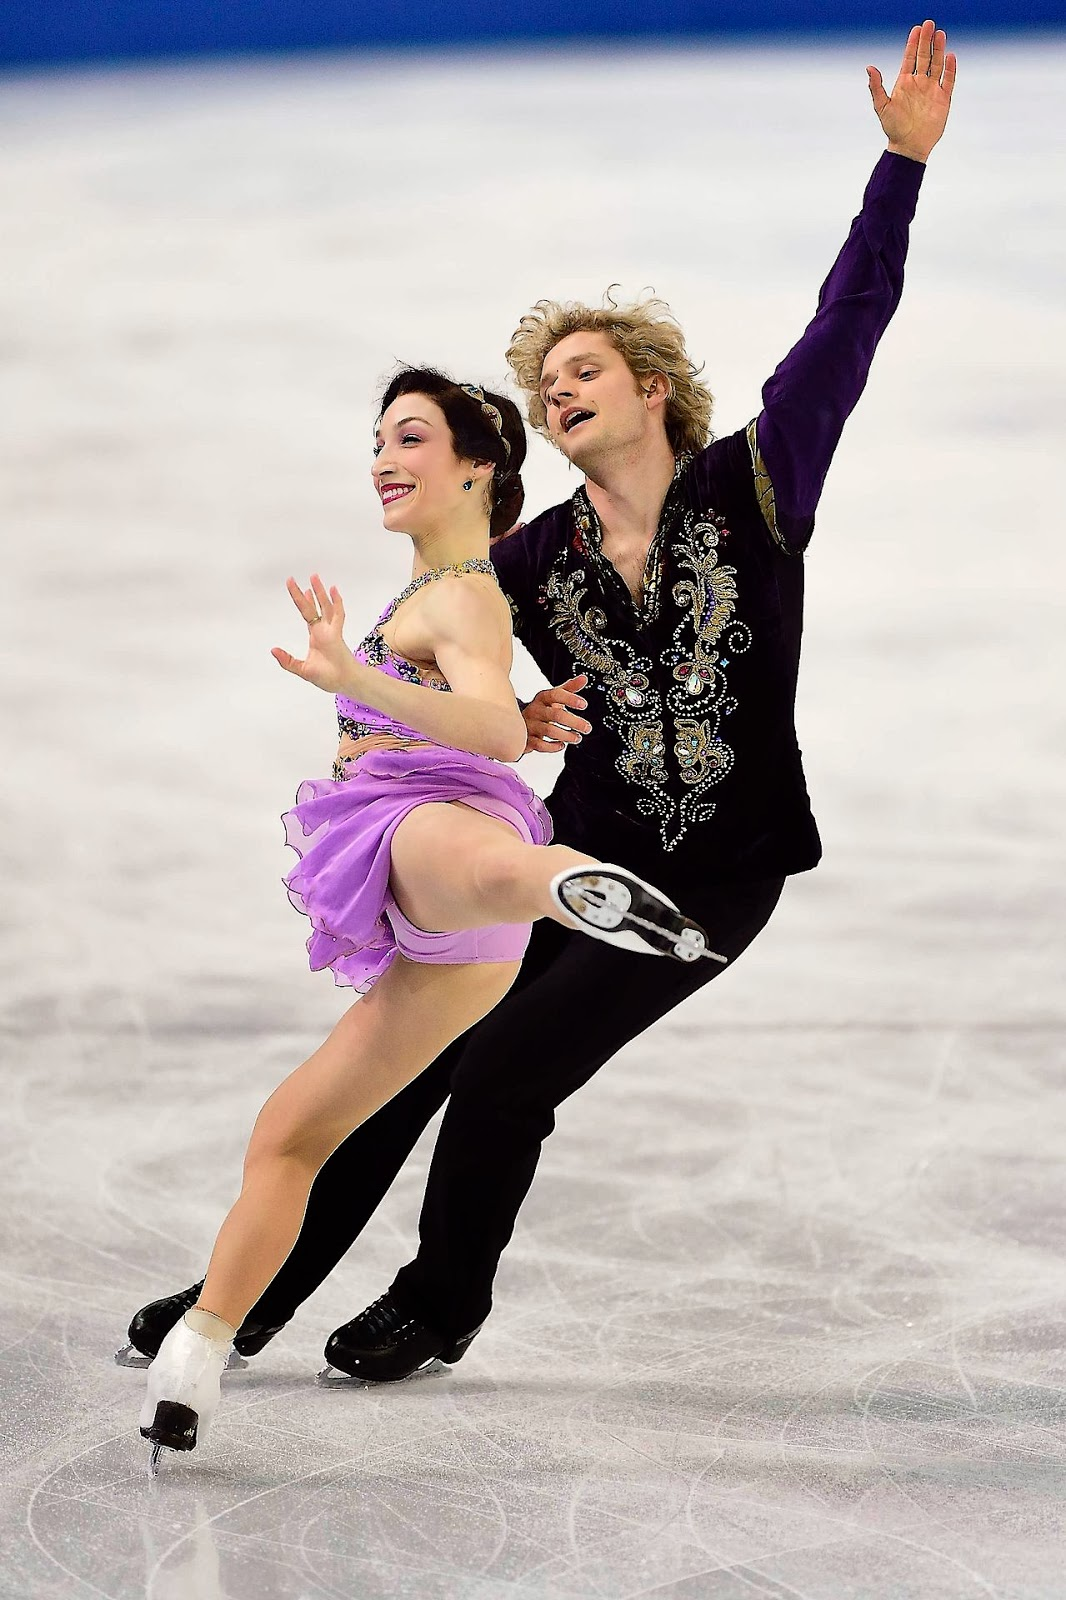 Figure Skating cover image